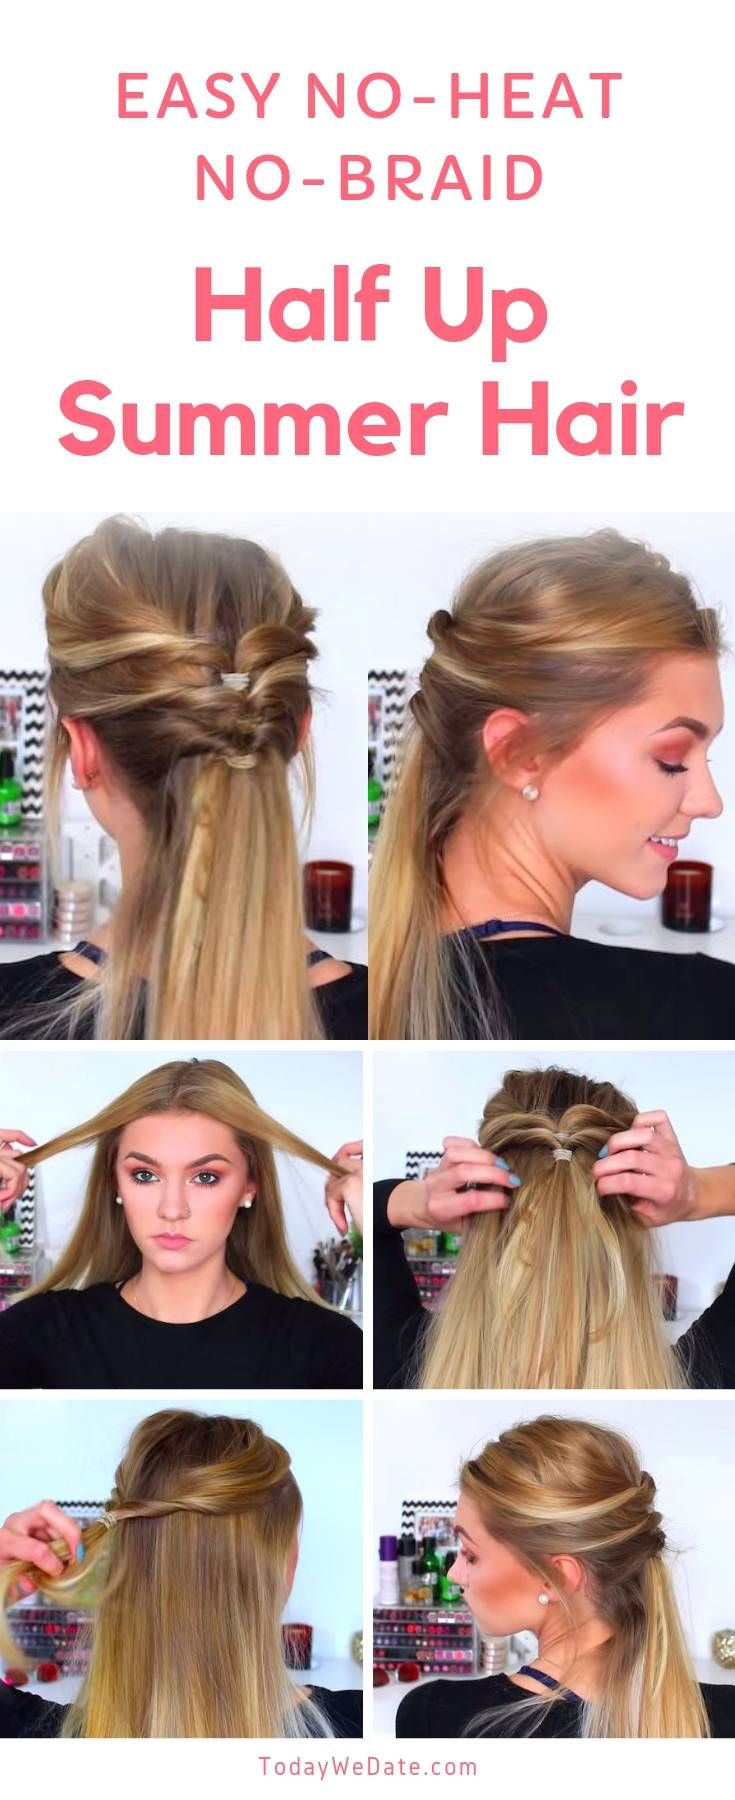 7 No Heat Easy Summer Hairstyles Anyone Can Pull Off In 5